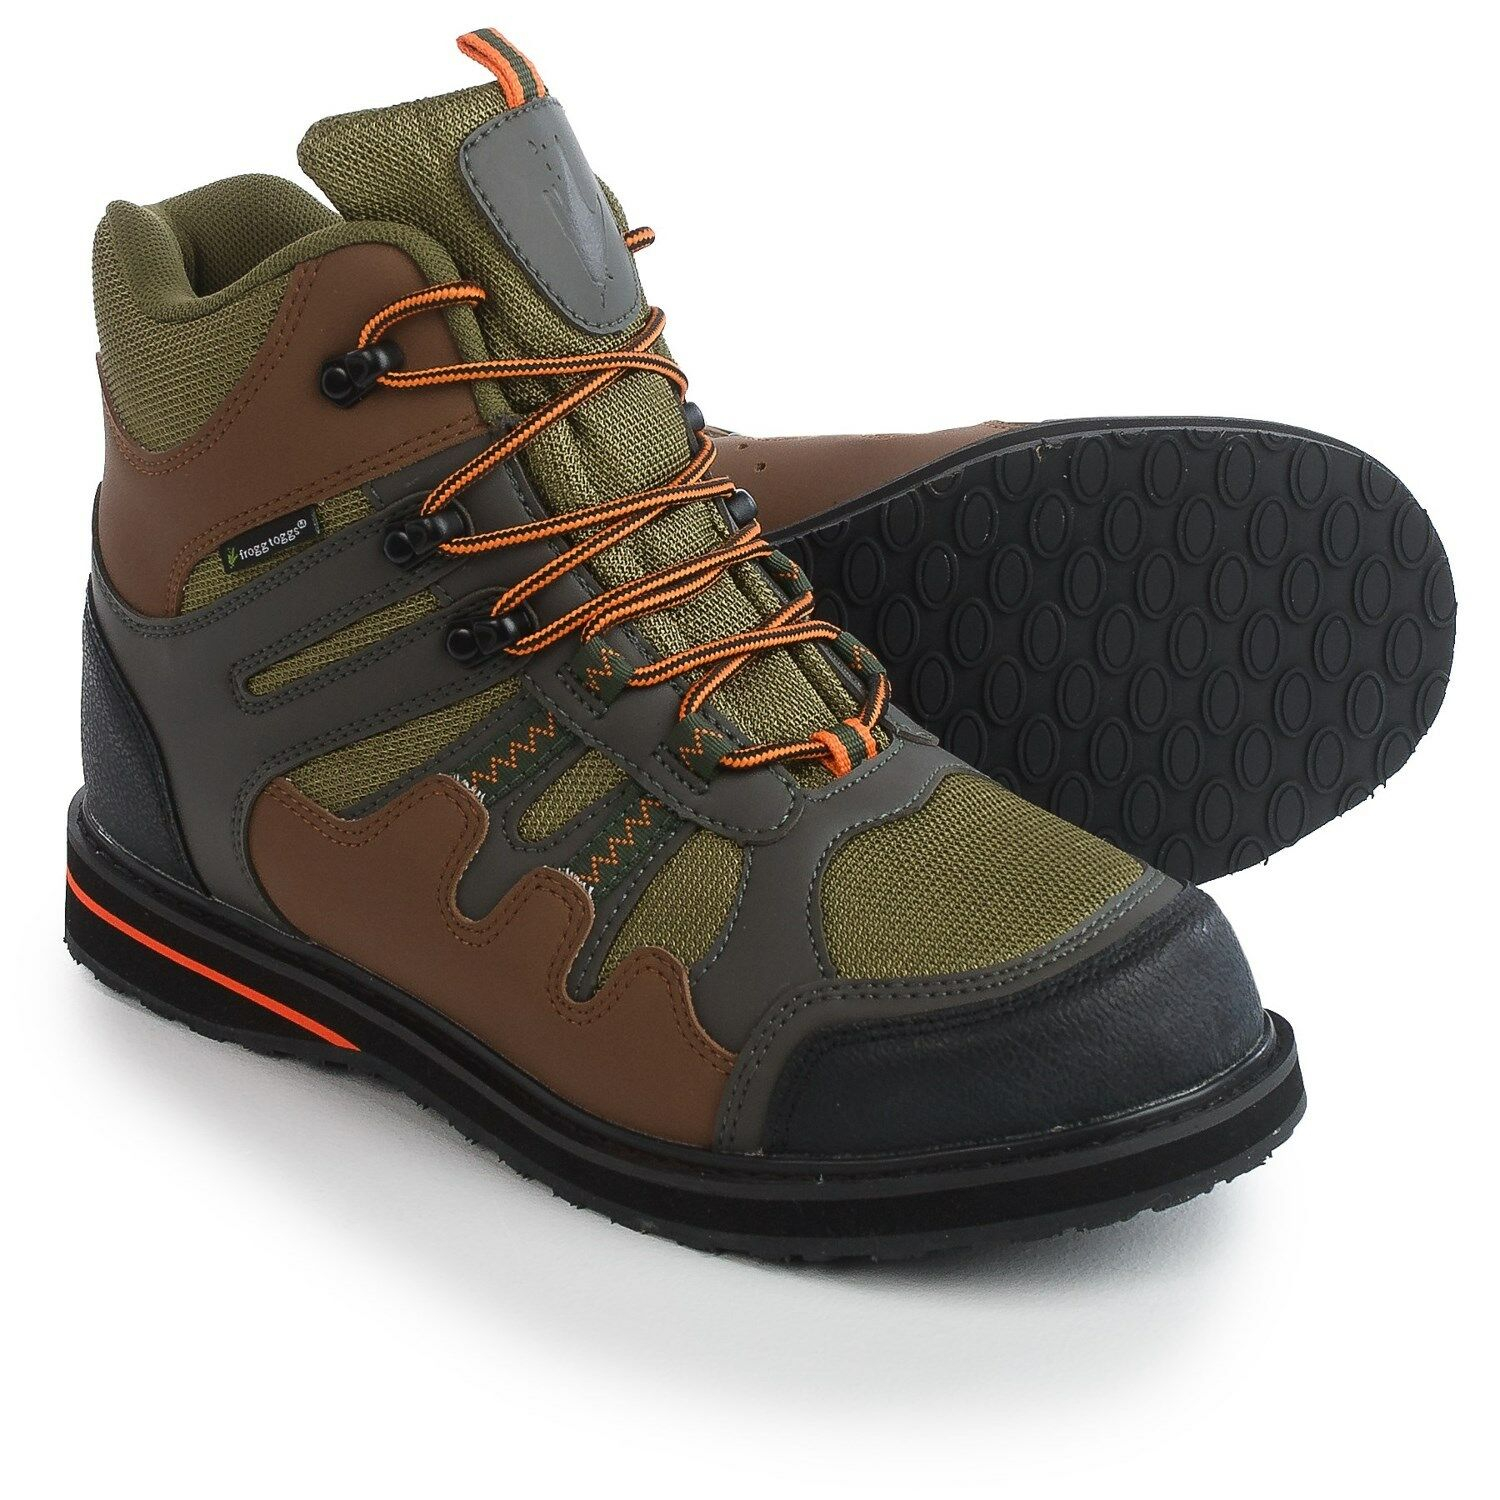 Frogg Toggs Anura Guide Wading Boots   shoes  - Men's Sizes 9 - 12 - Rubber Sole  save up to 30-50% off